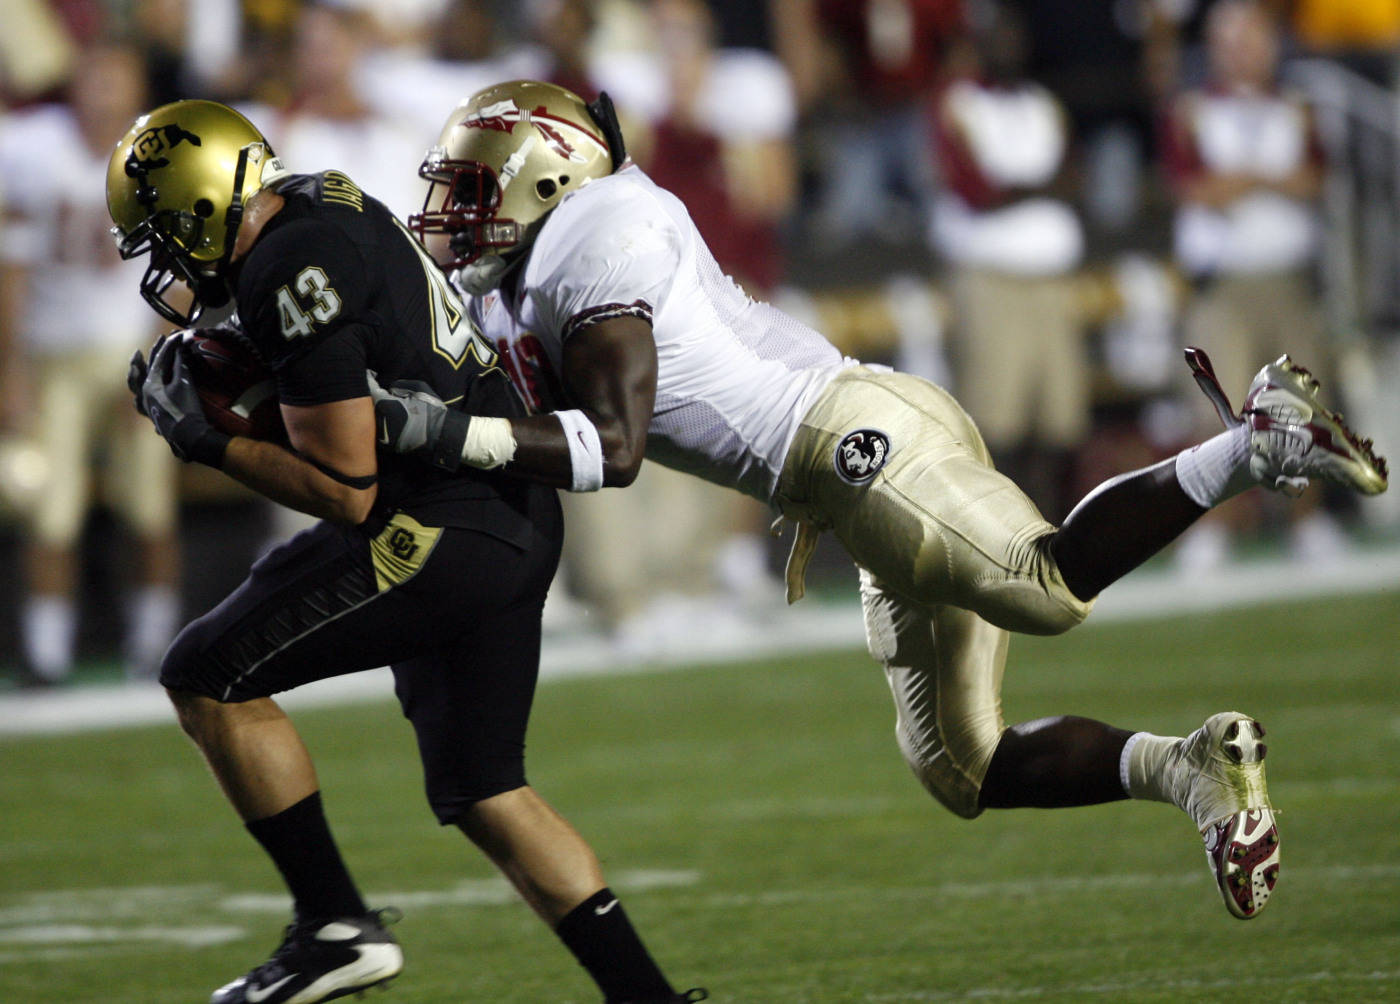 Colorado fullback Samson Jagoras, left, is tackled, after pulling in a screen pass, by Florida State linebacker Geno Hayes in the first quarter. (AP Photo/David Zalubowski)